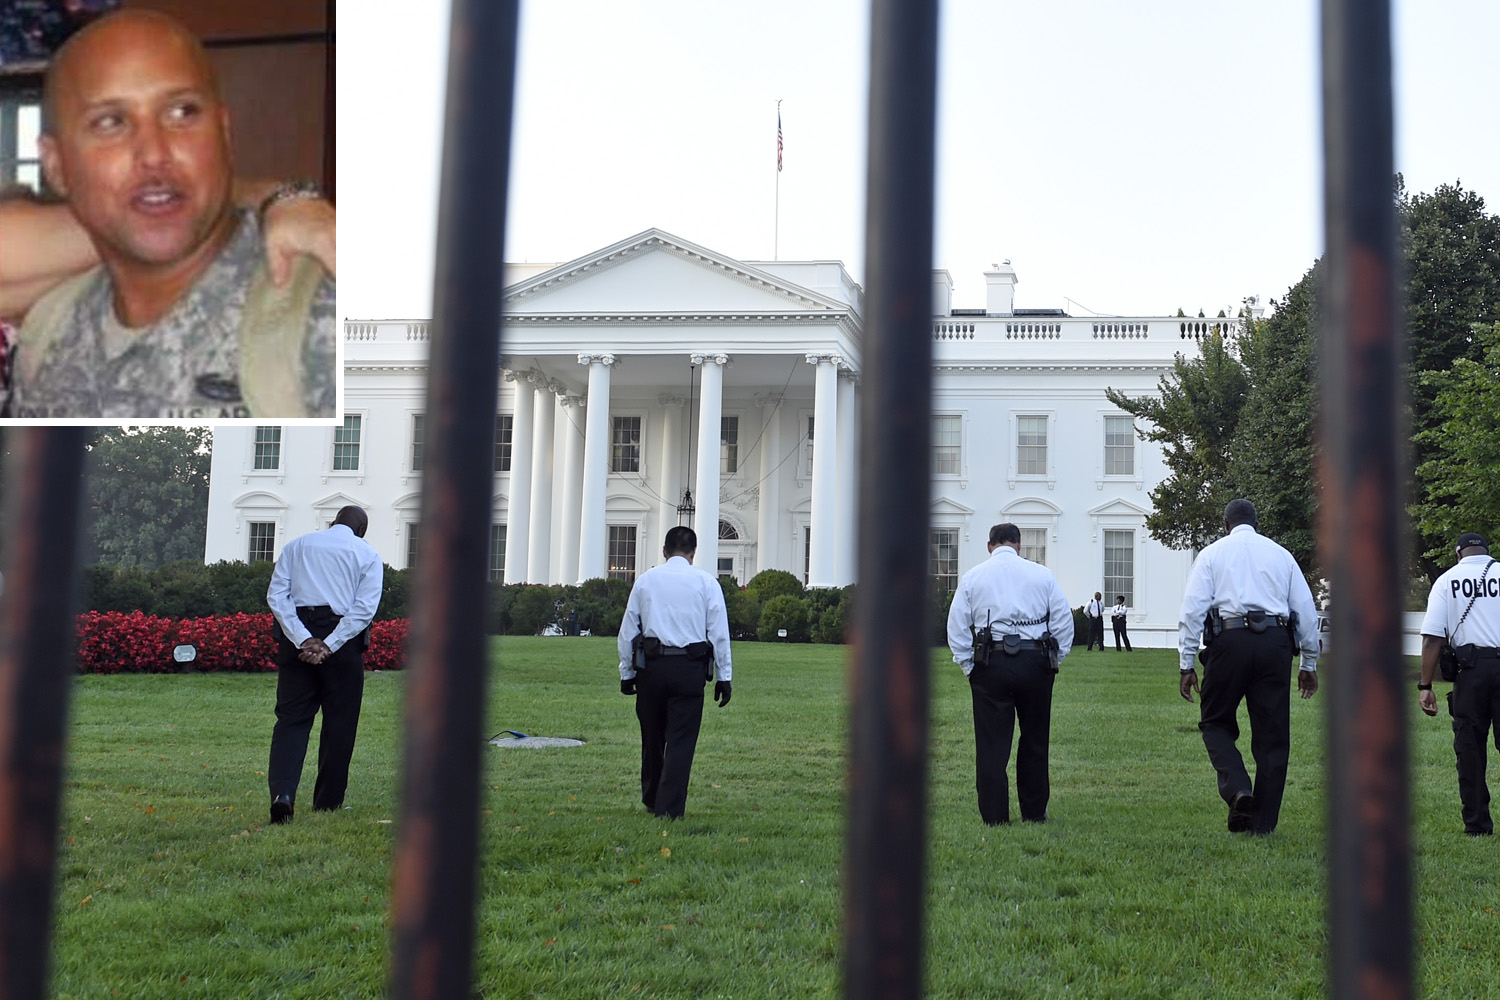 Iraq war veteran stormed White House with knife